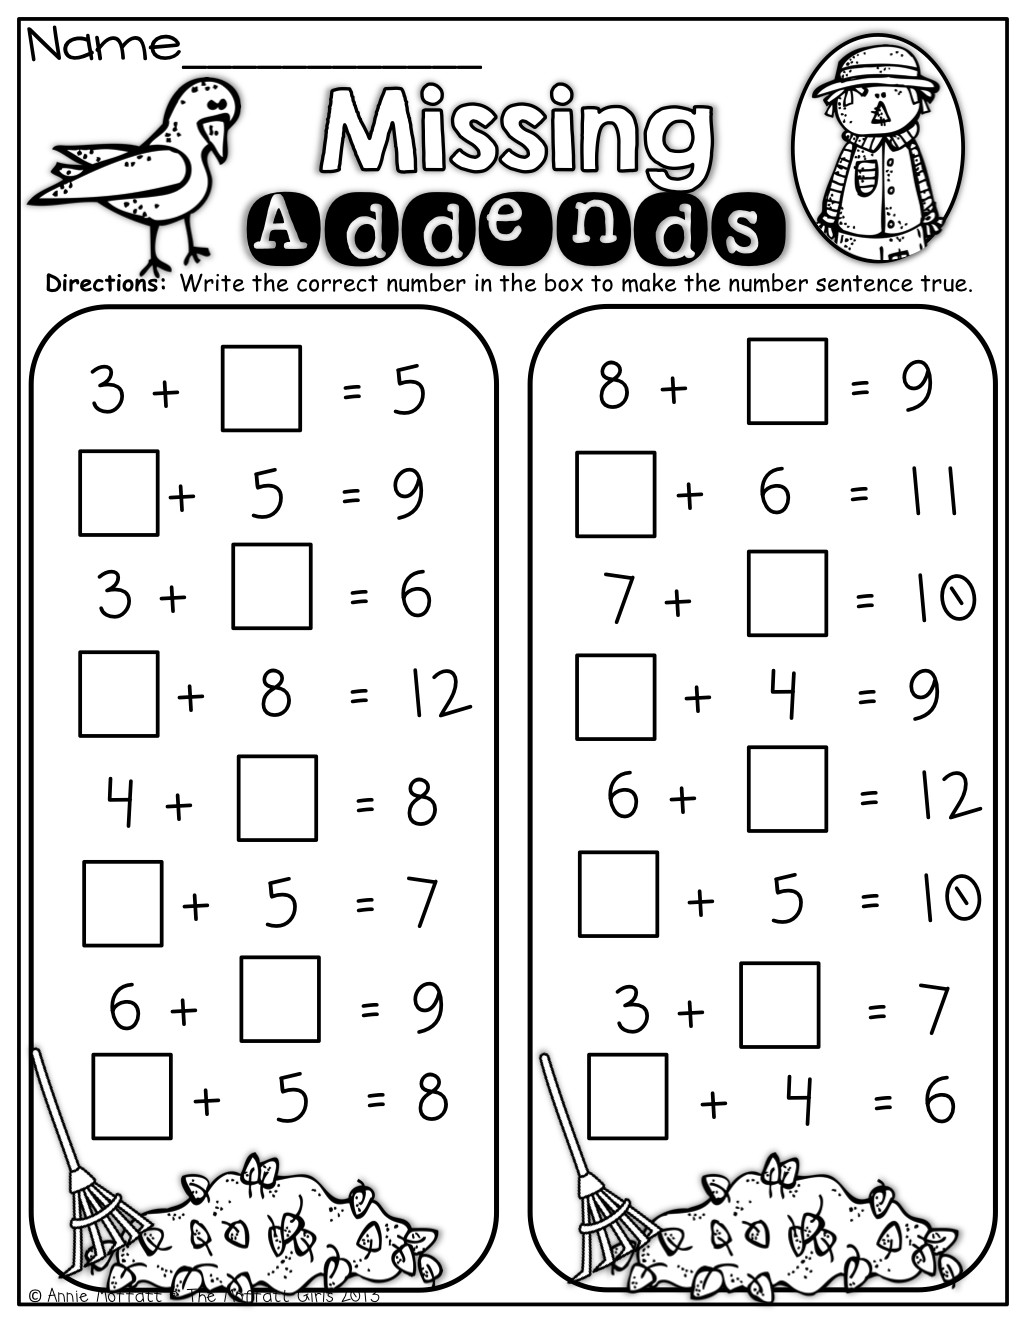 Missing Addend Worksheets 1st Grade Missing Addend Worksheet 1st Grade